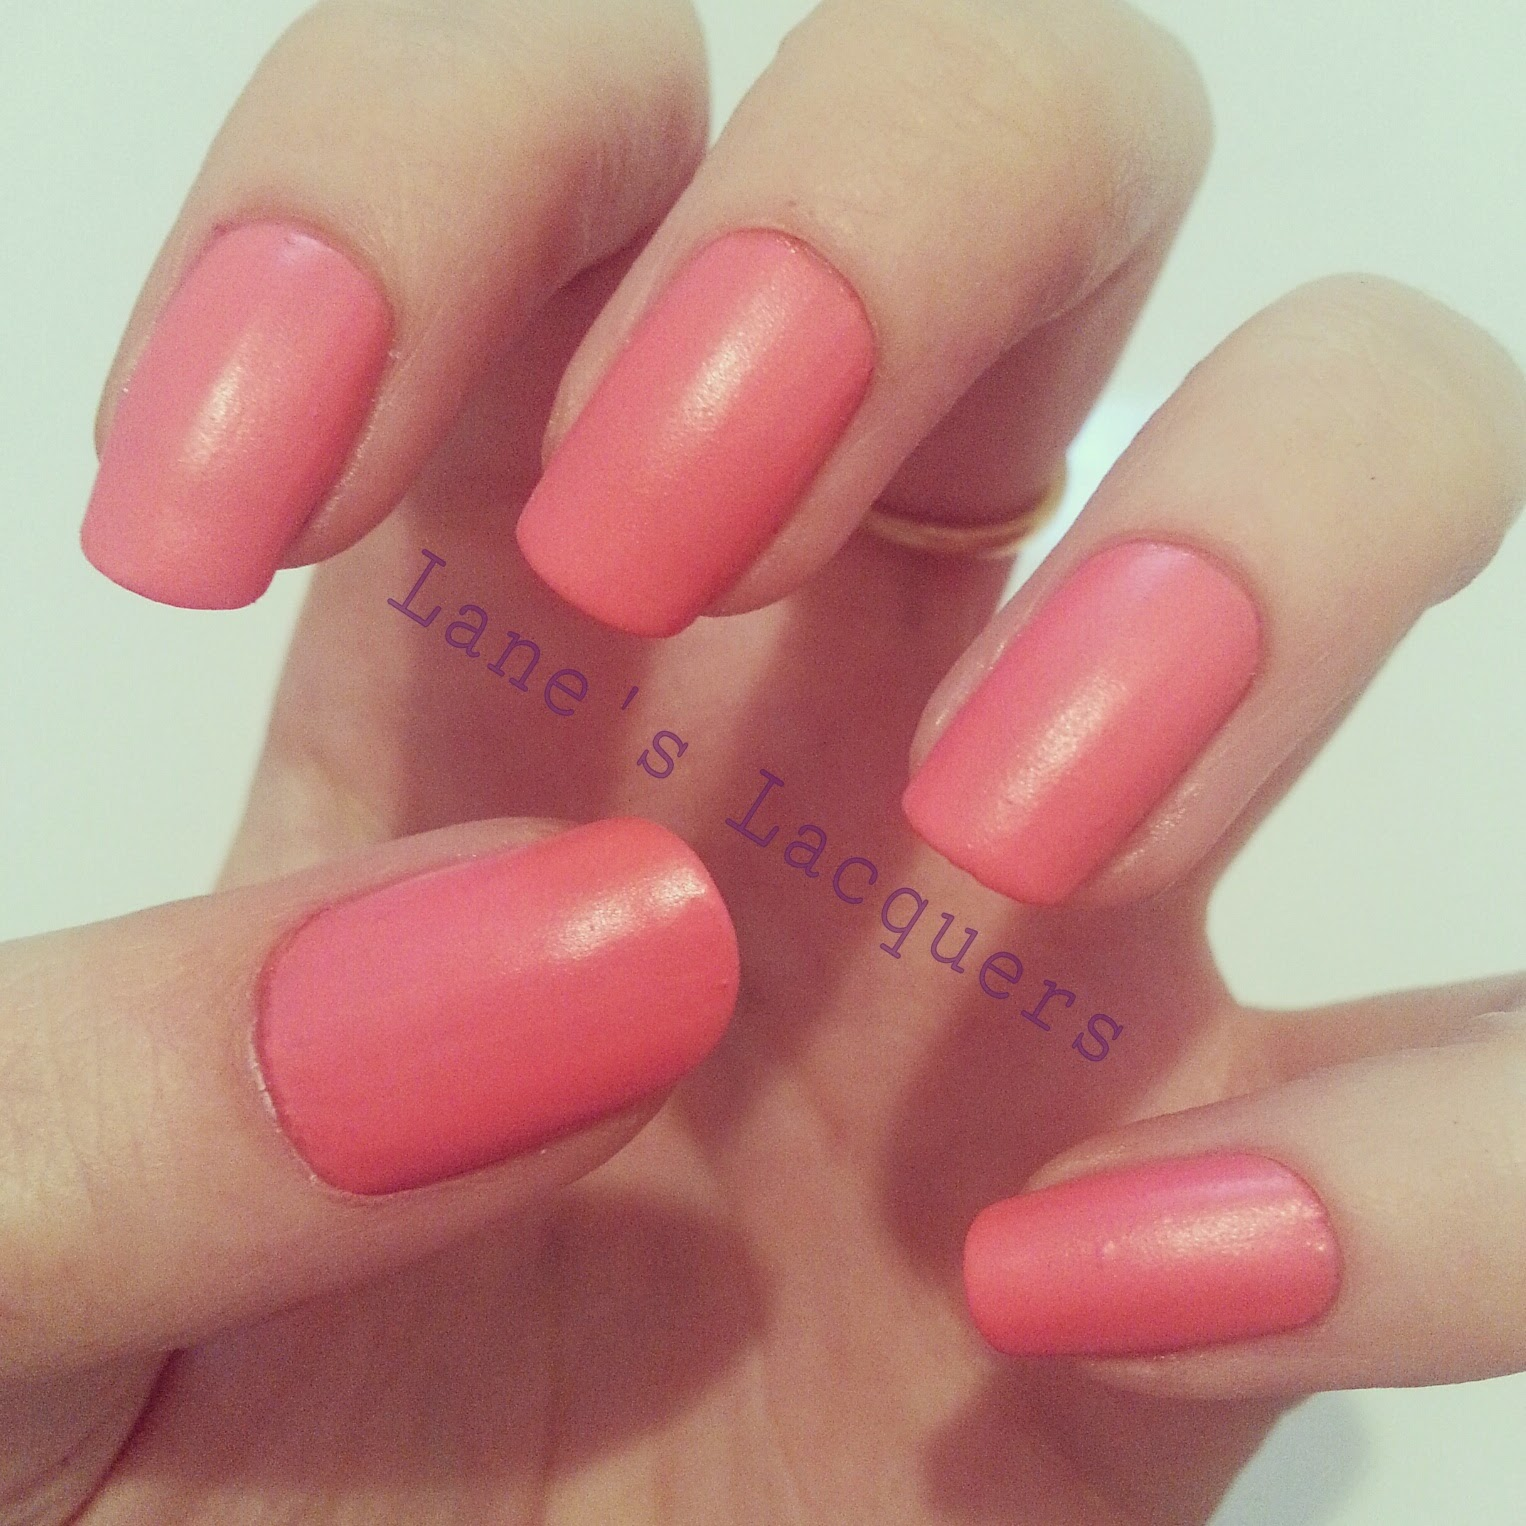 barry-m-miami-swatch-manicure (1)